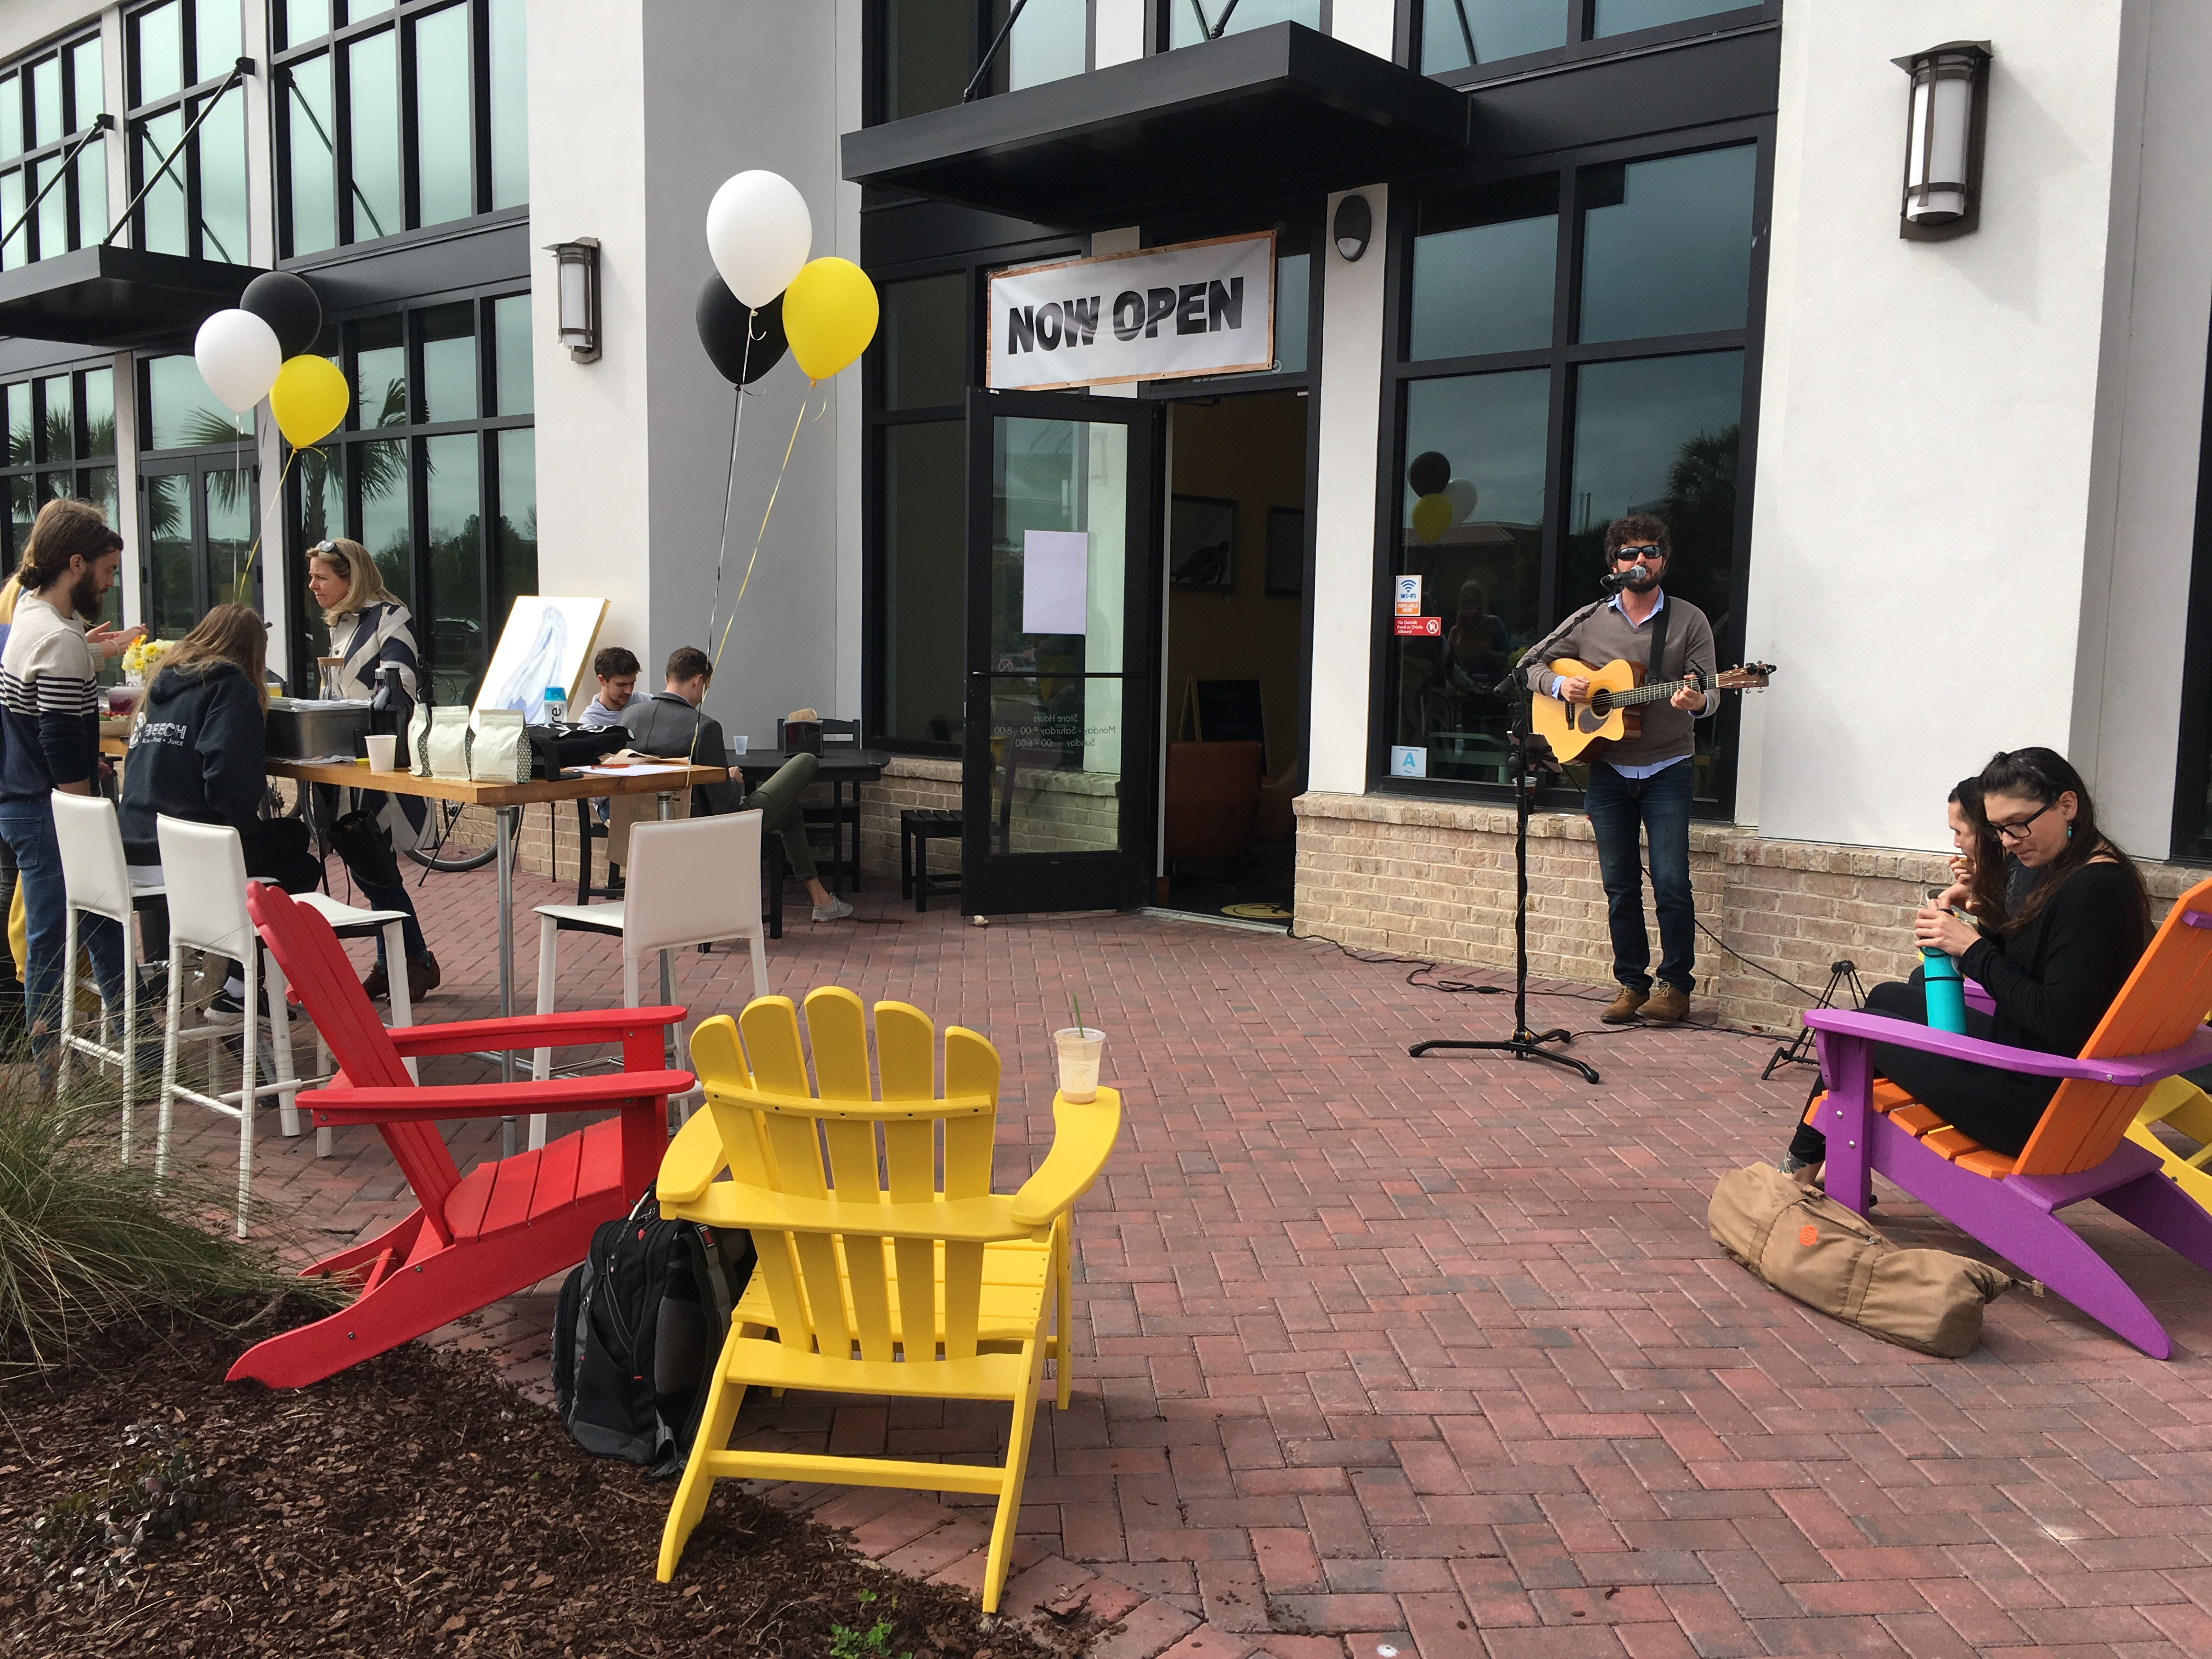 About 200 people stopped in to enjoy free food samples, beverages and music at the BEECH grand opening.